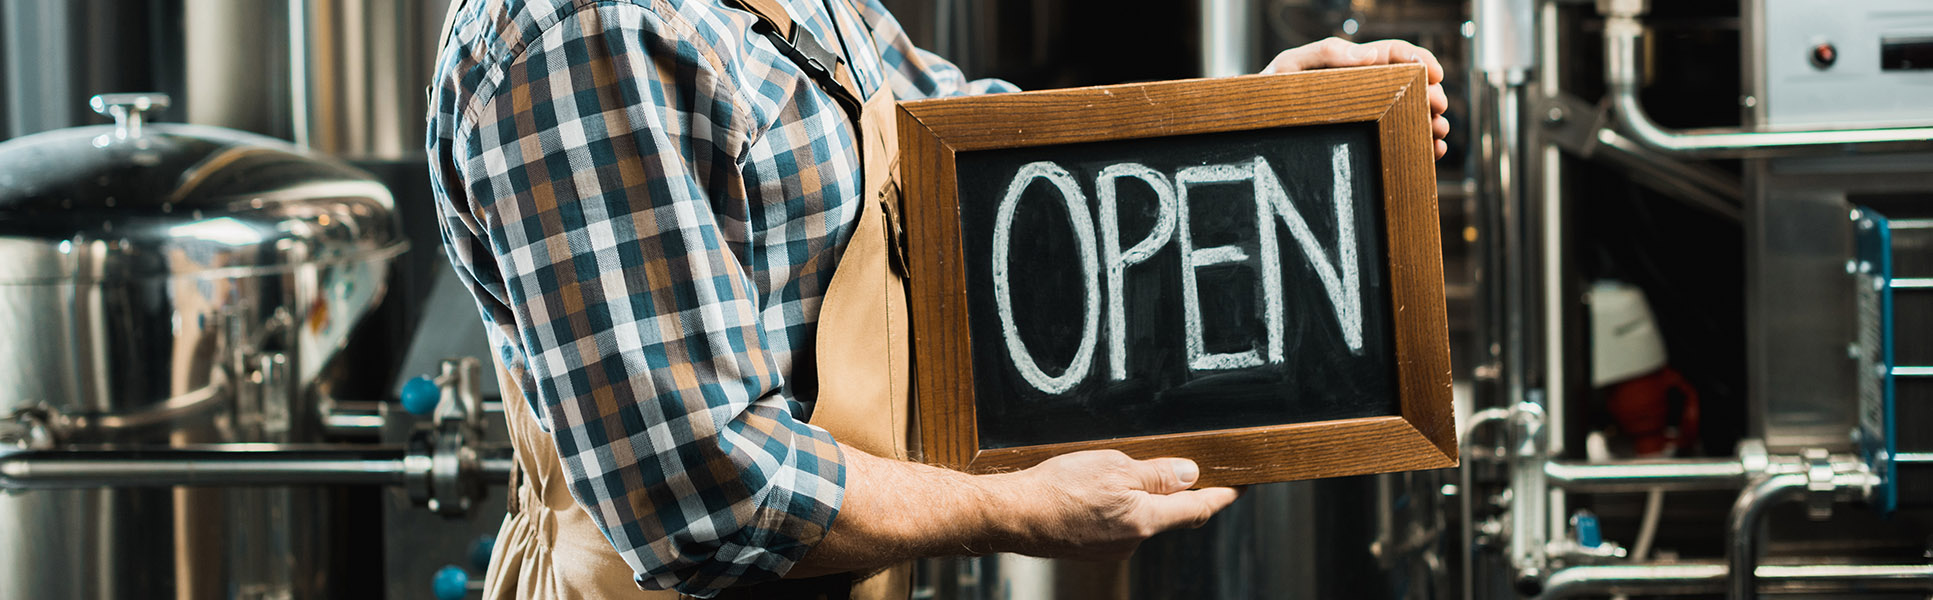 Keeping your small business open for business with PPP, equipment and real estate lending options